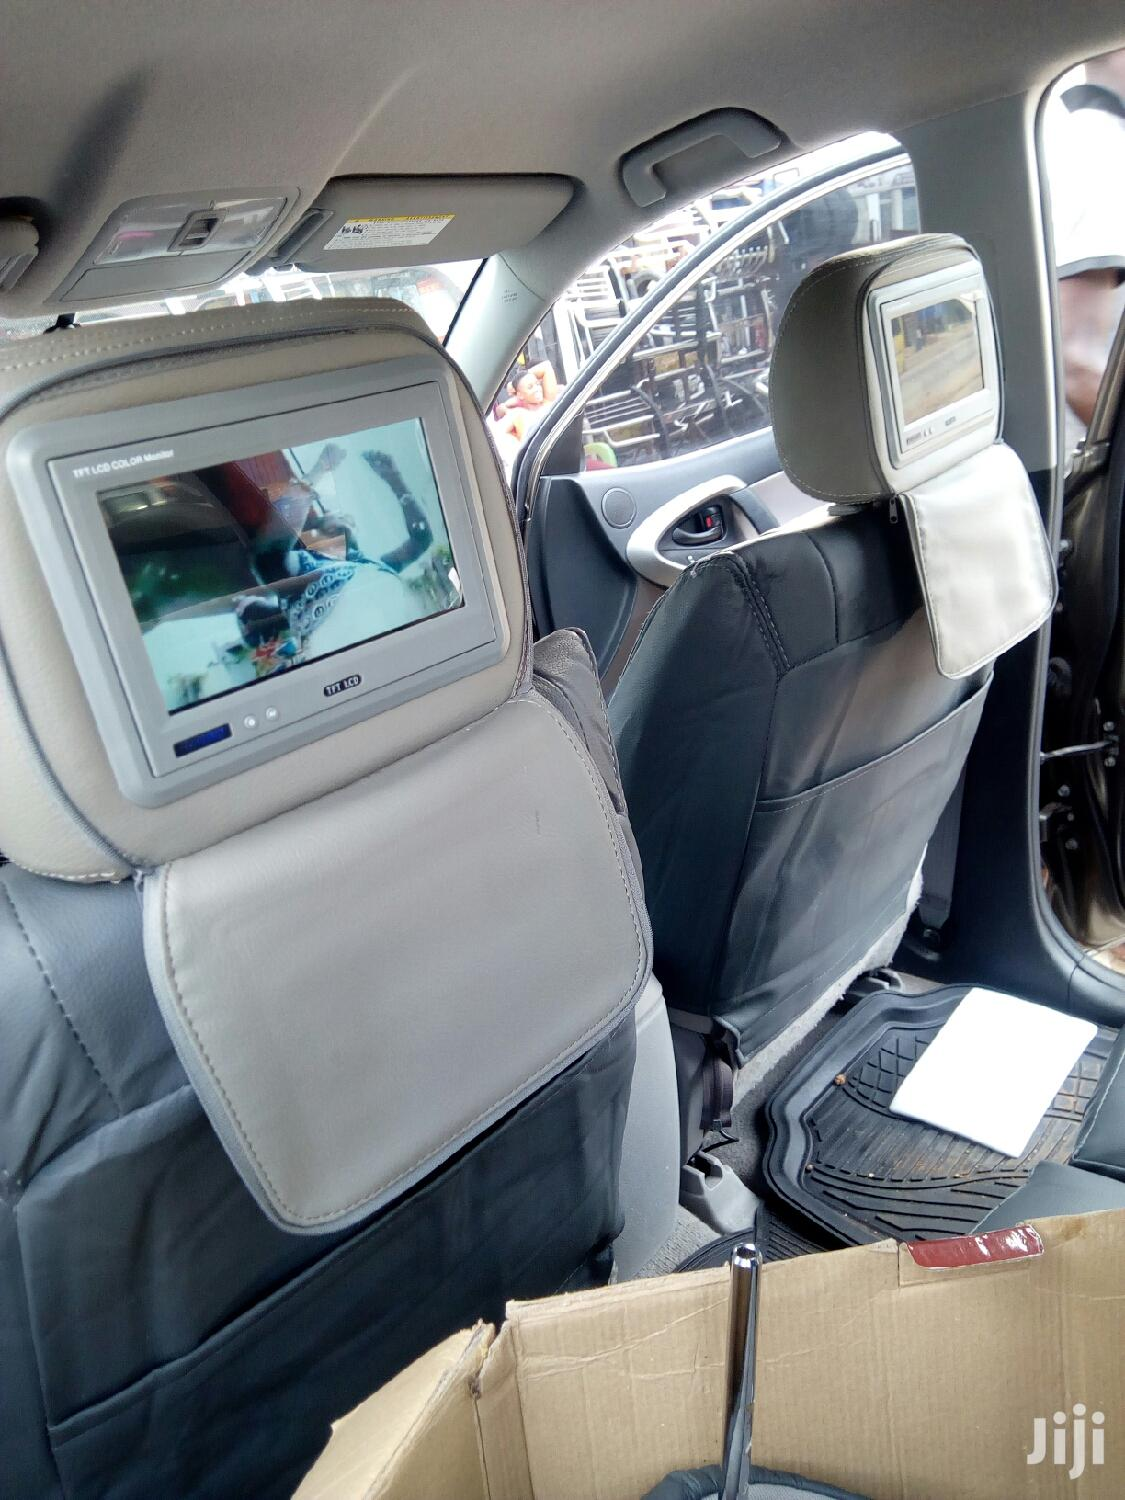 Archive: Car (Tv) Head Rest Monitor